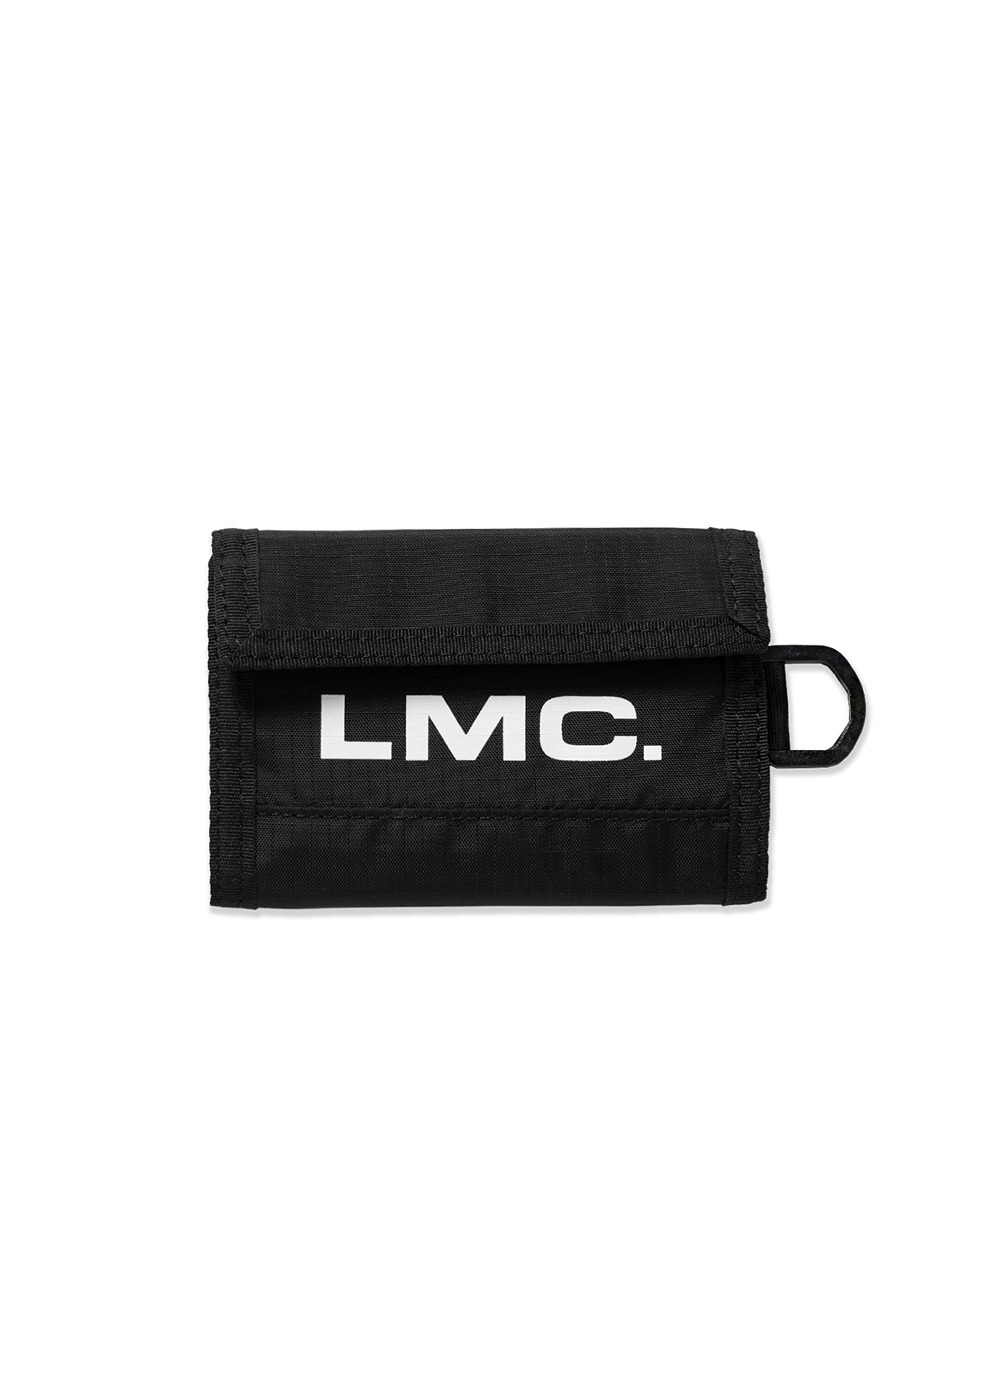 LMC SYSTEM COMPACT WALLET black